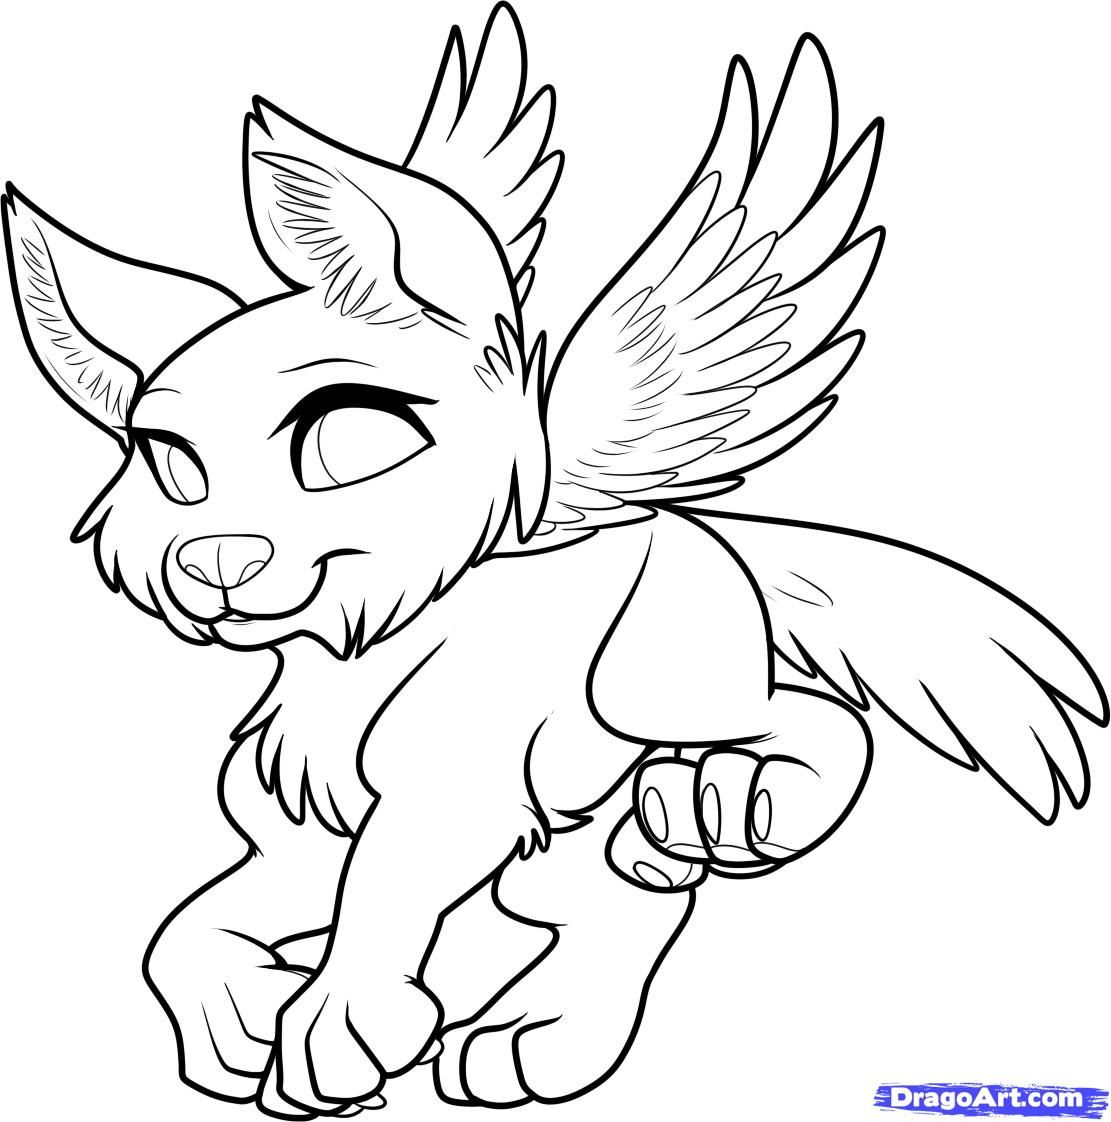 how to draw a flying wolf flying wolf step 11 1 000000067057 5 jpg